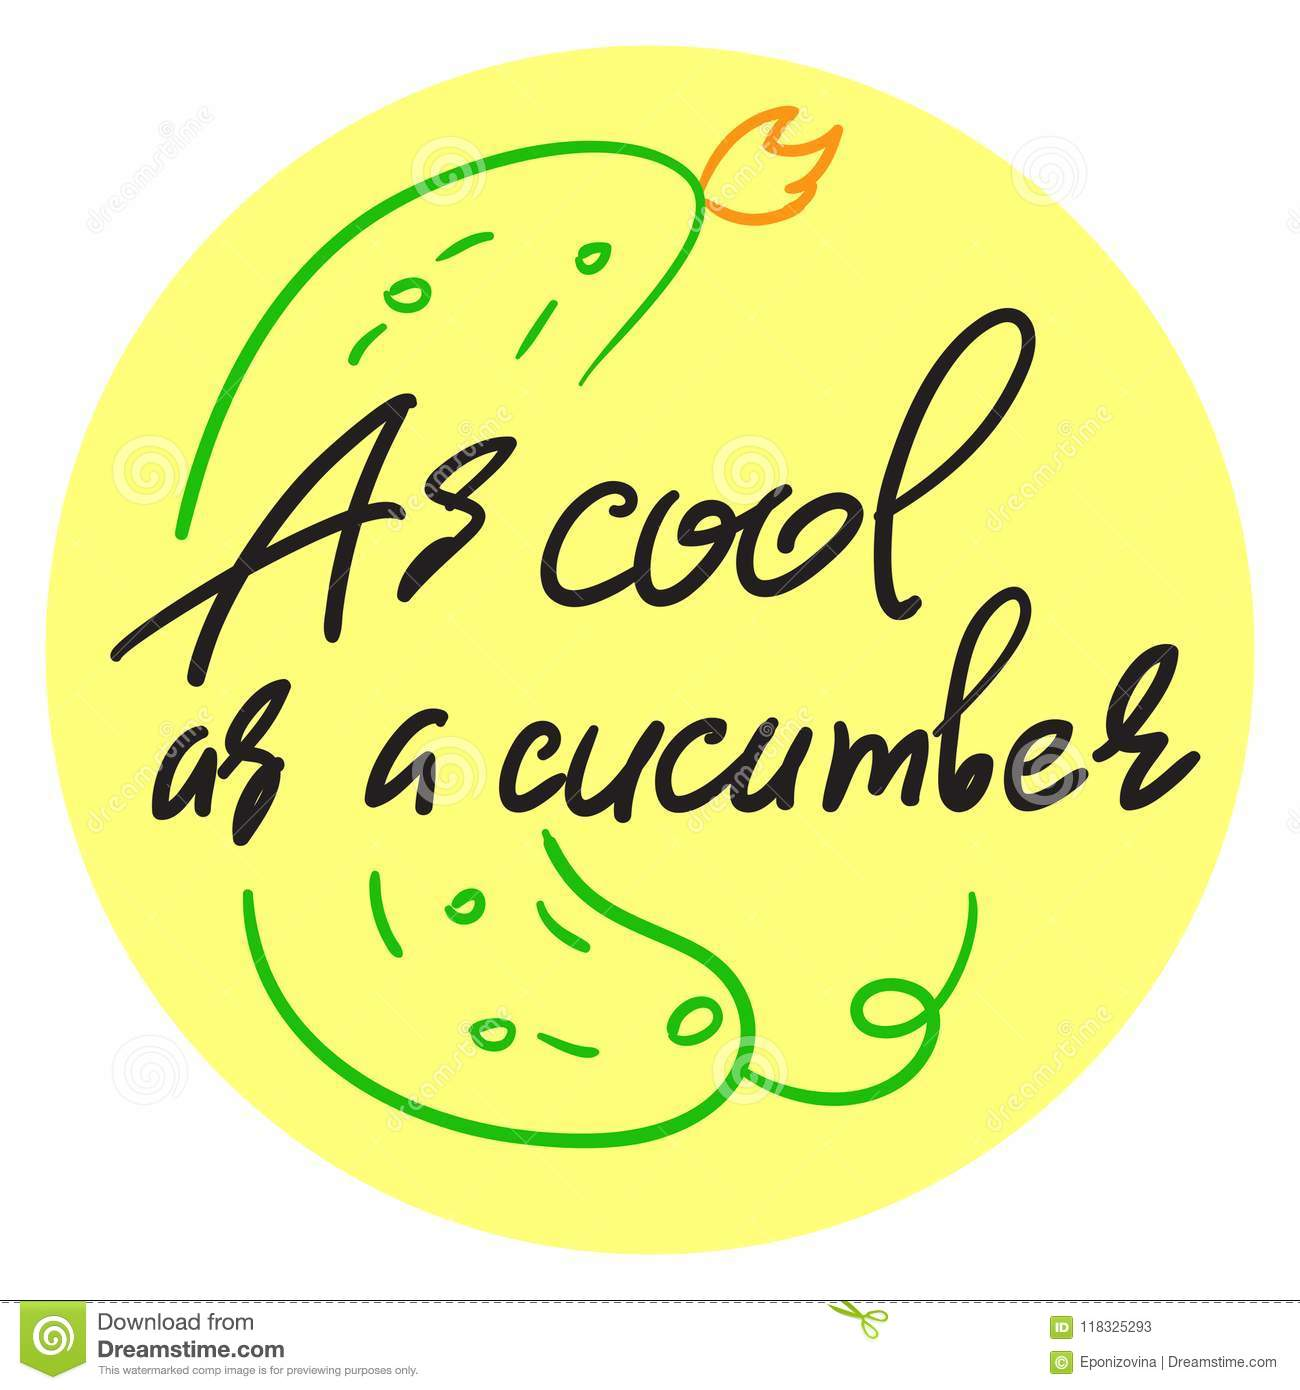 As cool as a cucumber handwritten funny motivational quote american slang urban dictionary english phraseologism idiom print for inspiring poster